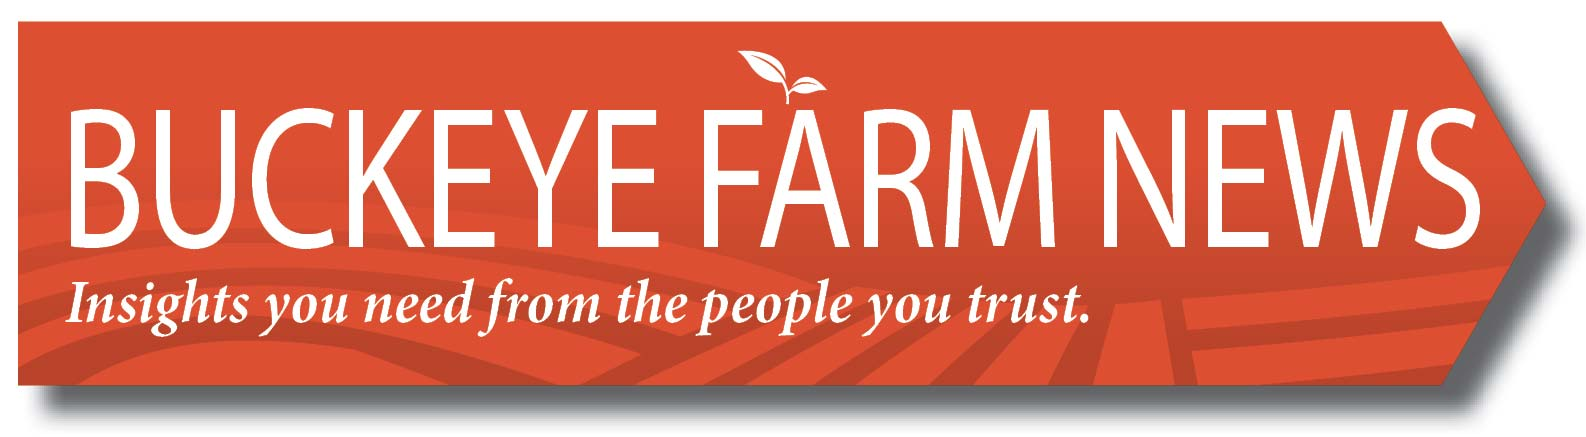 2018-media-kit-buckeye-farm-news-logo